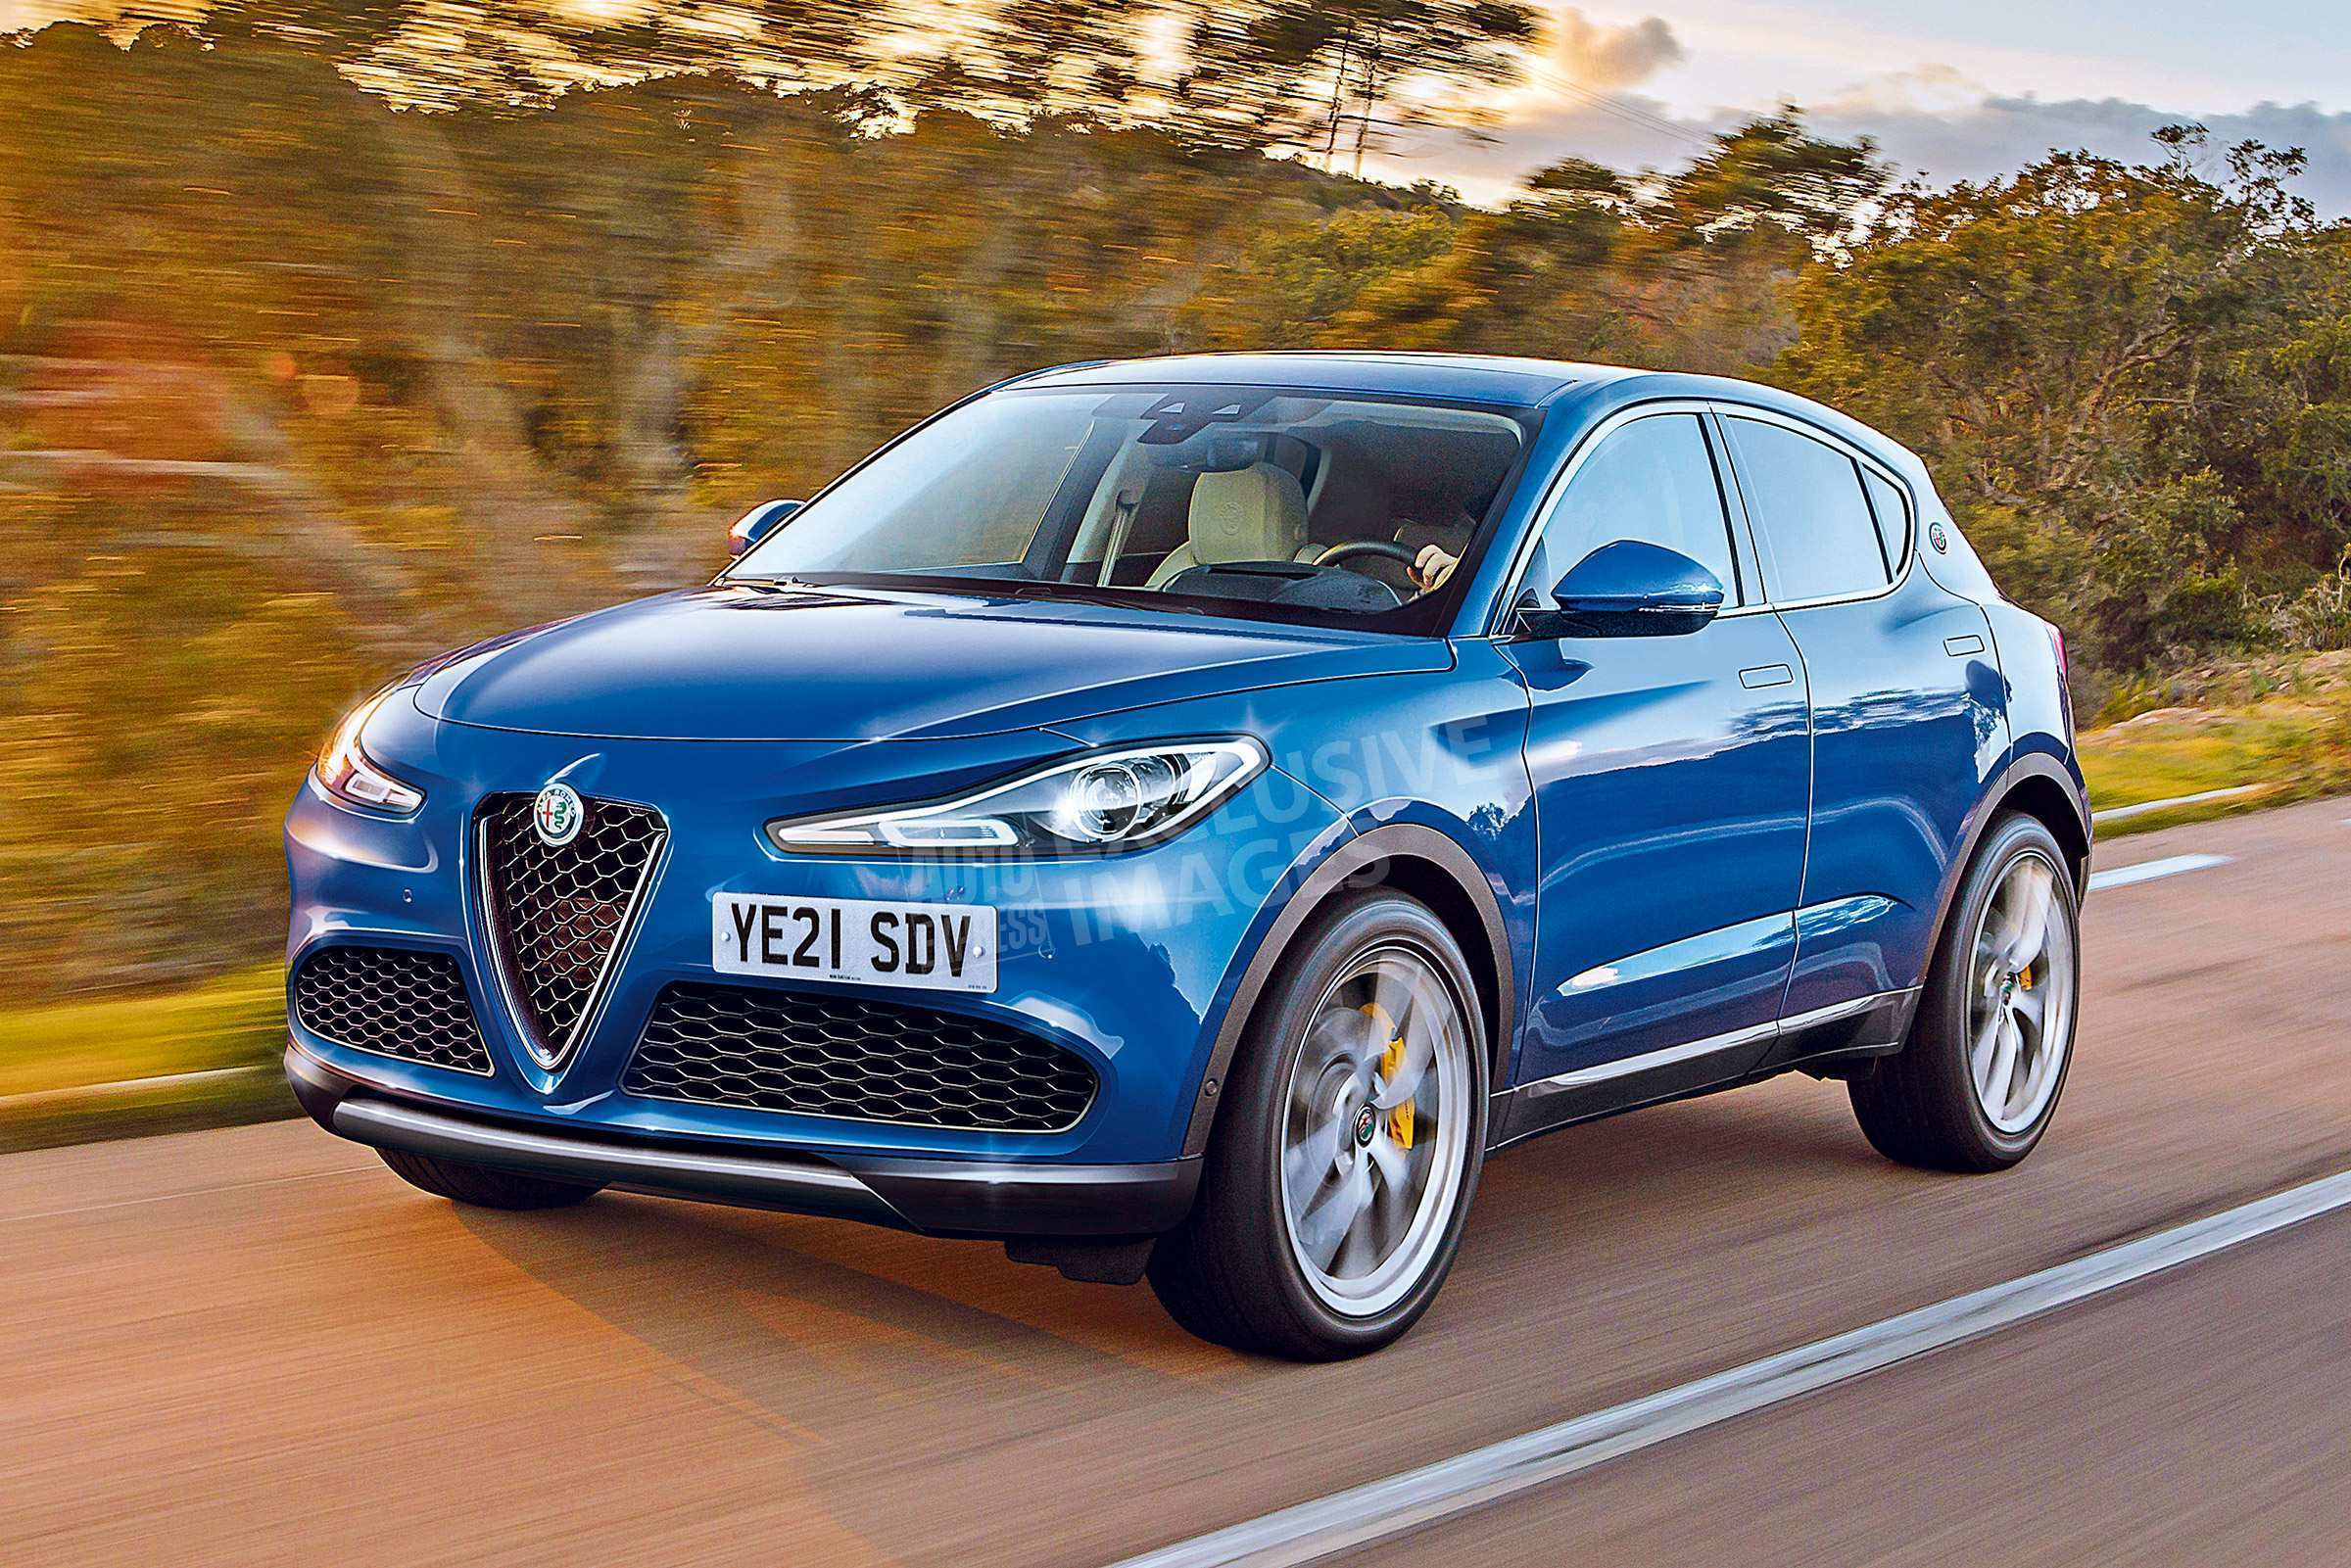 64 Gallery of 2020 Alfa Romeo Stelvio Spesification for 2020 Alfa Romeo Stelvio